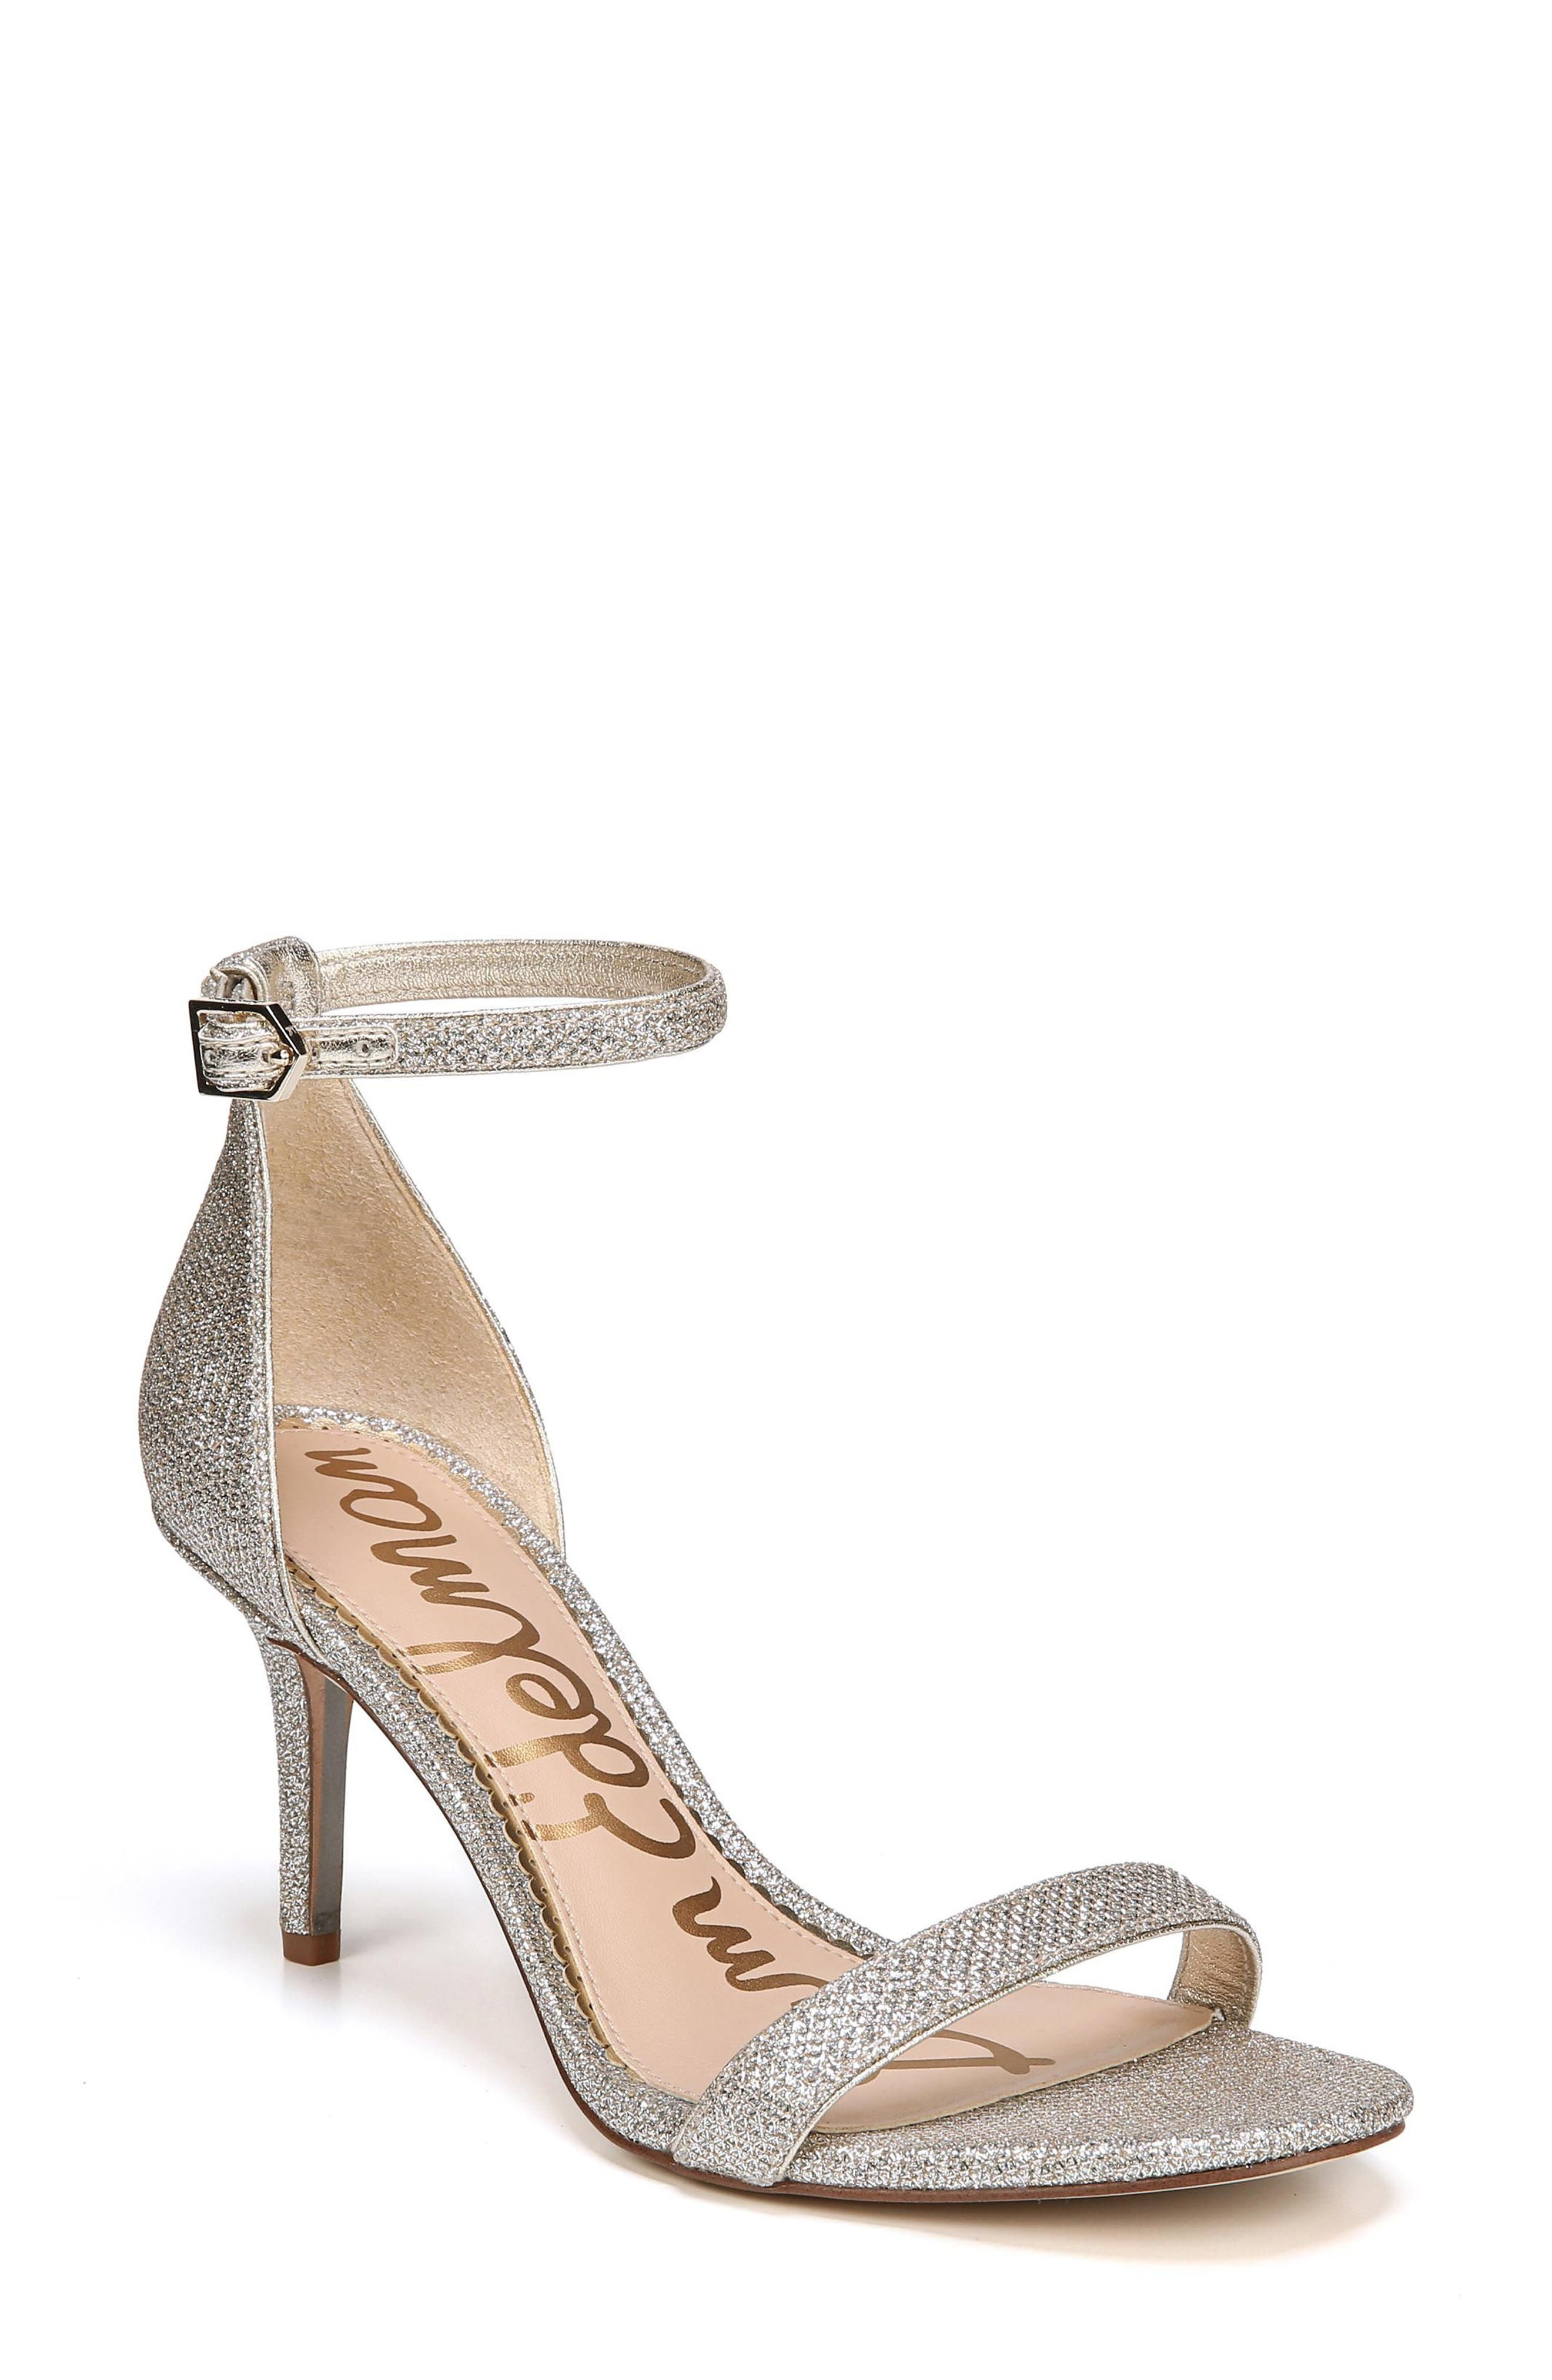 d3ce9cdc5d Trendy Prom Shoes & Homecoming Shoes | Nordstrom